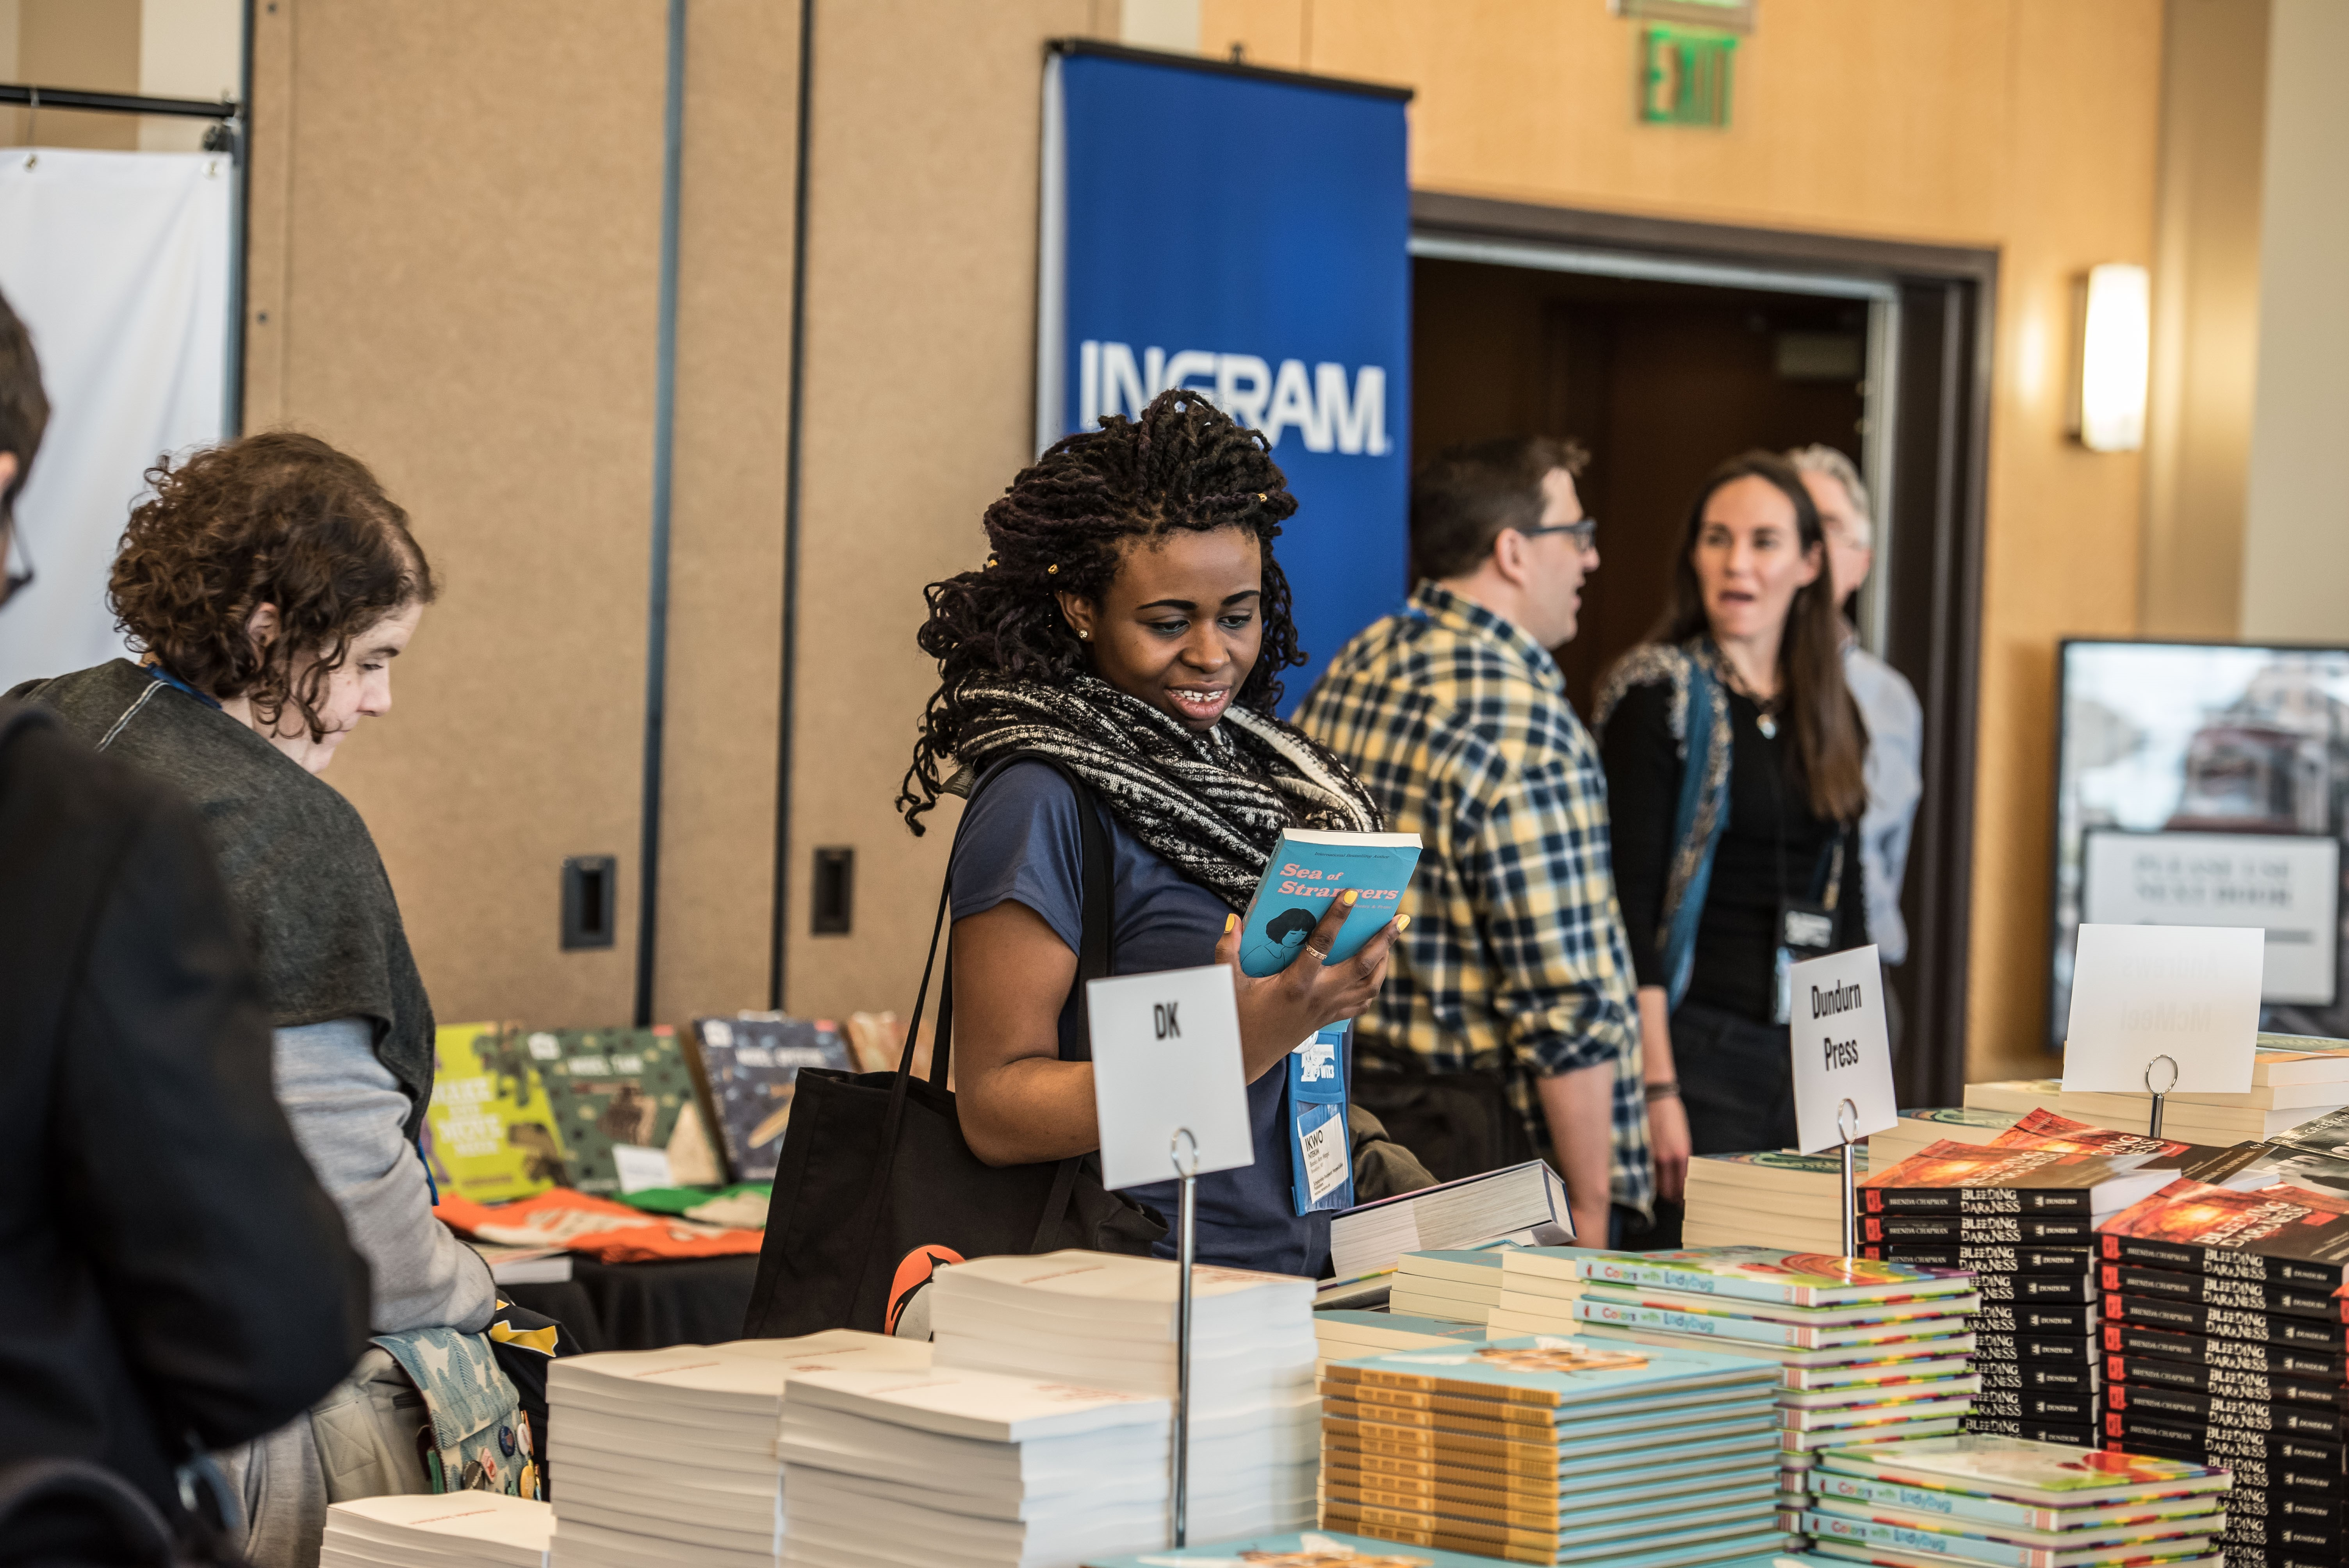 The piles of books drew booksellers to the galley room.